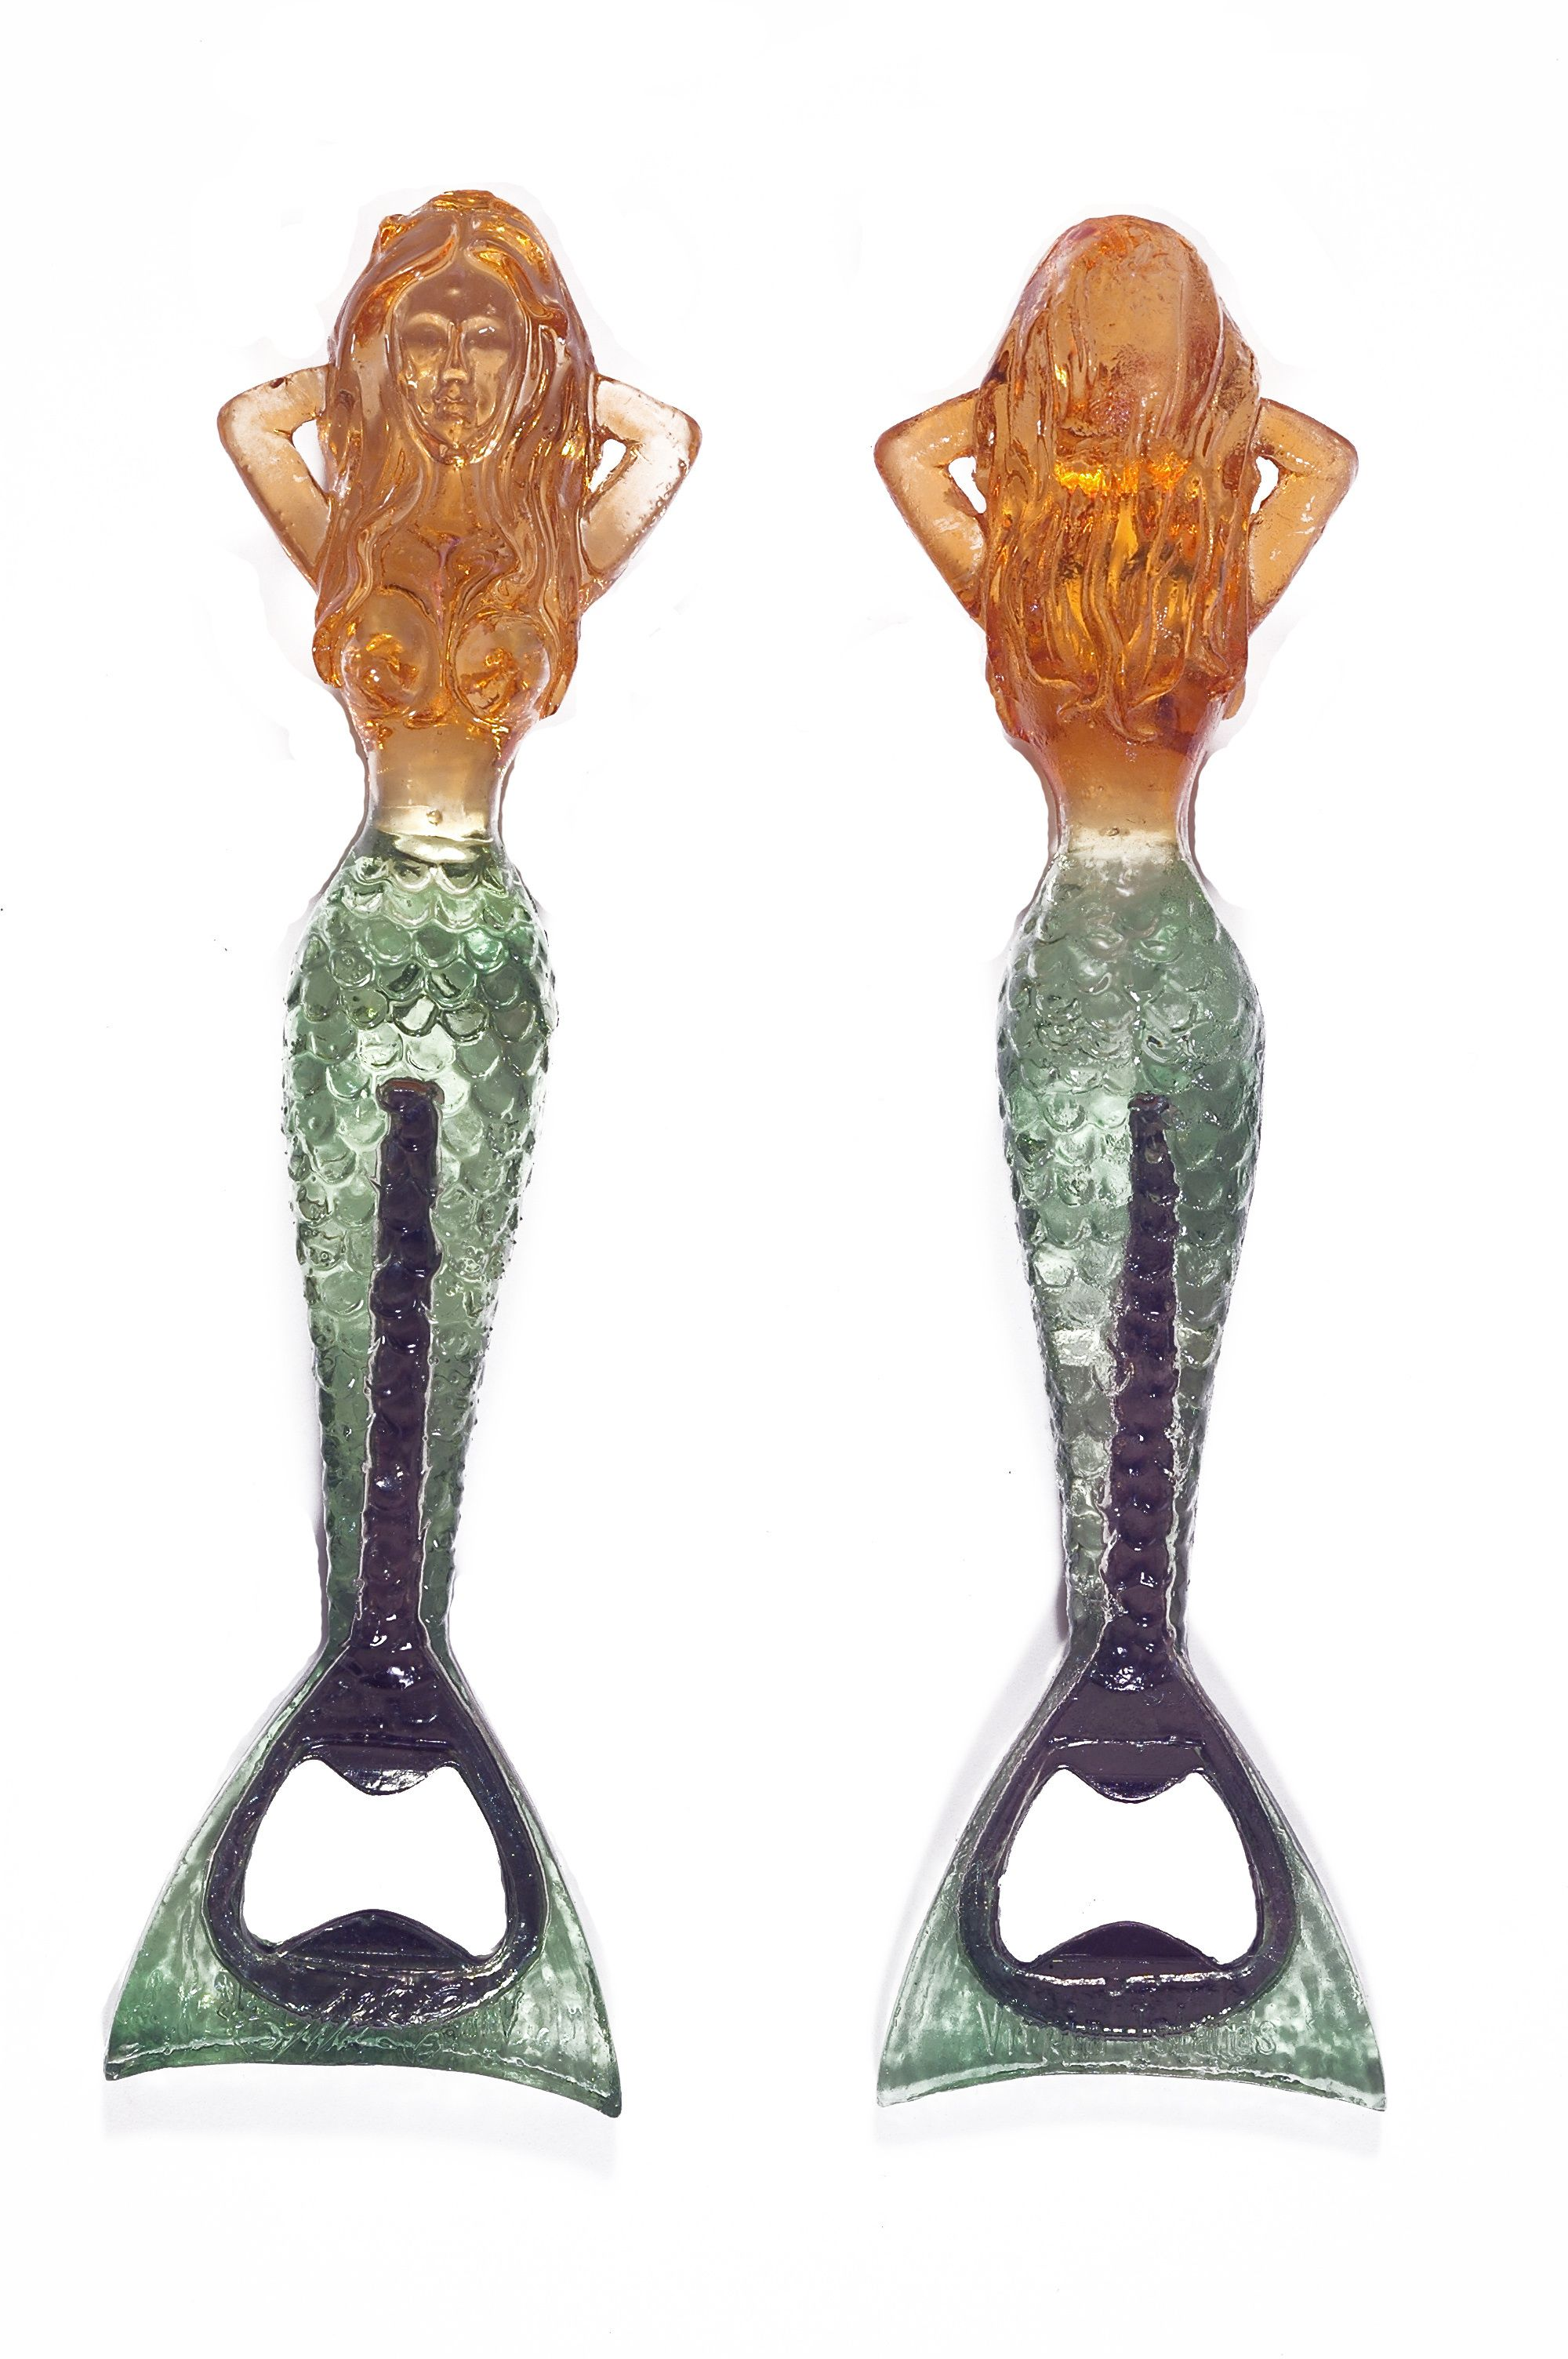 Mermaid Bottle Opener A Must Have For The Sunset Hour Mermaid